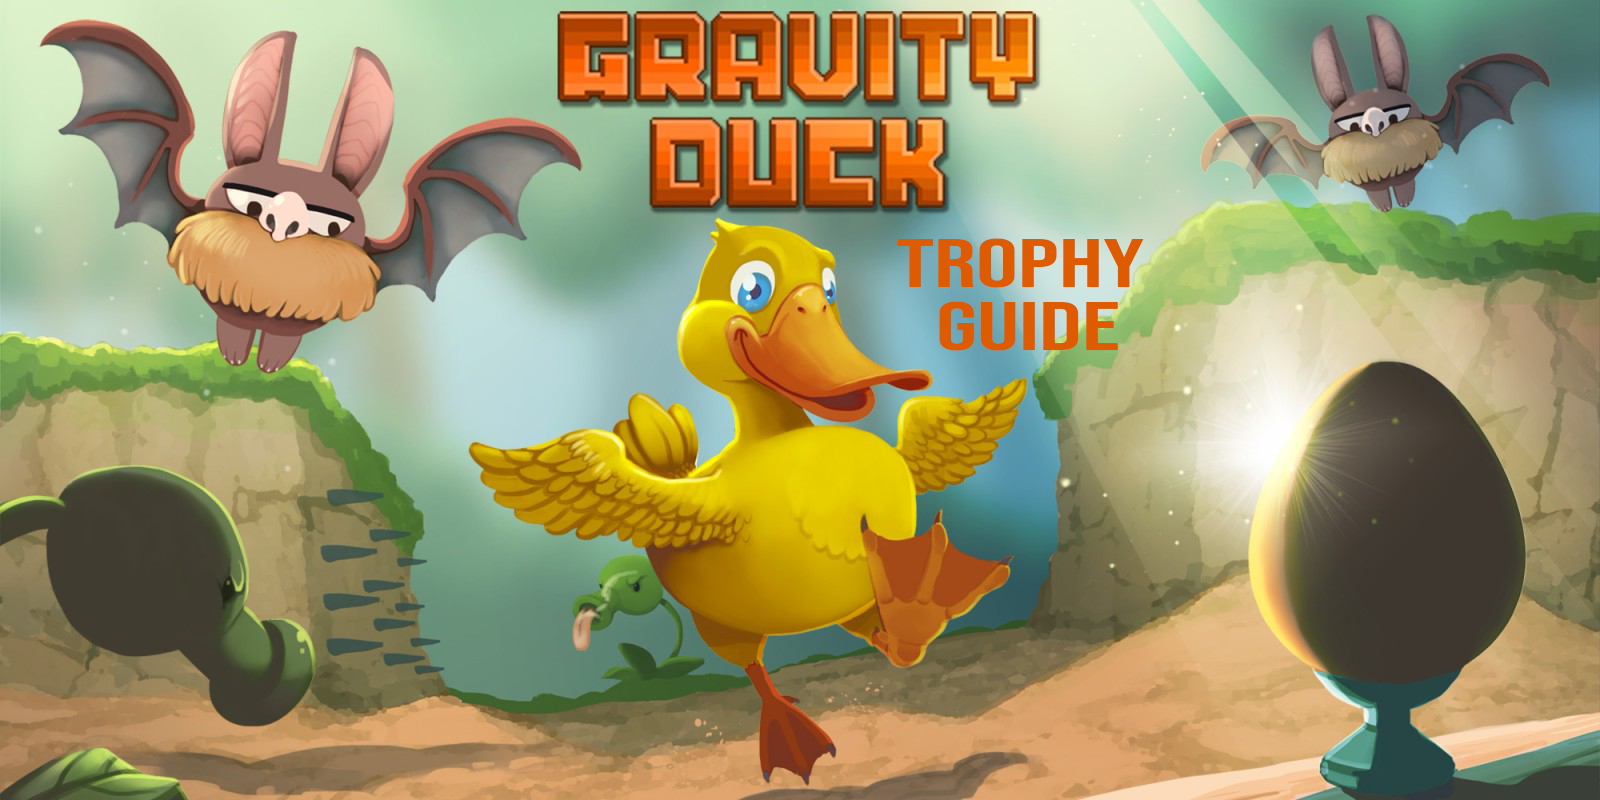 Gravity Duck Trophy Guide